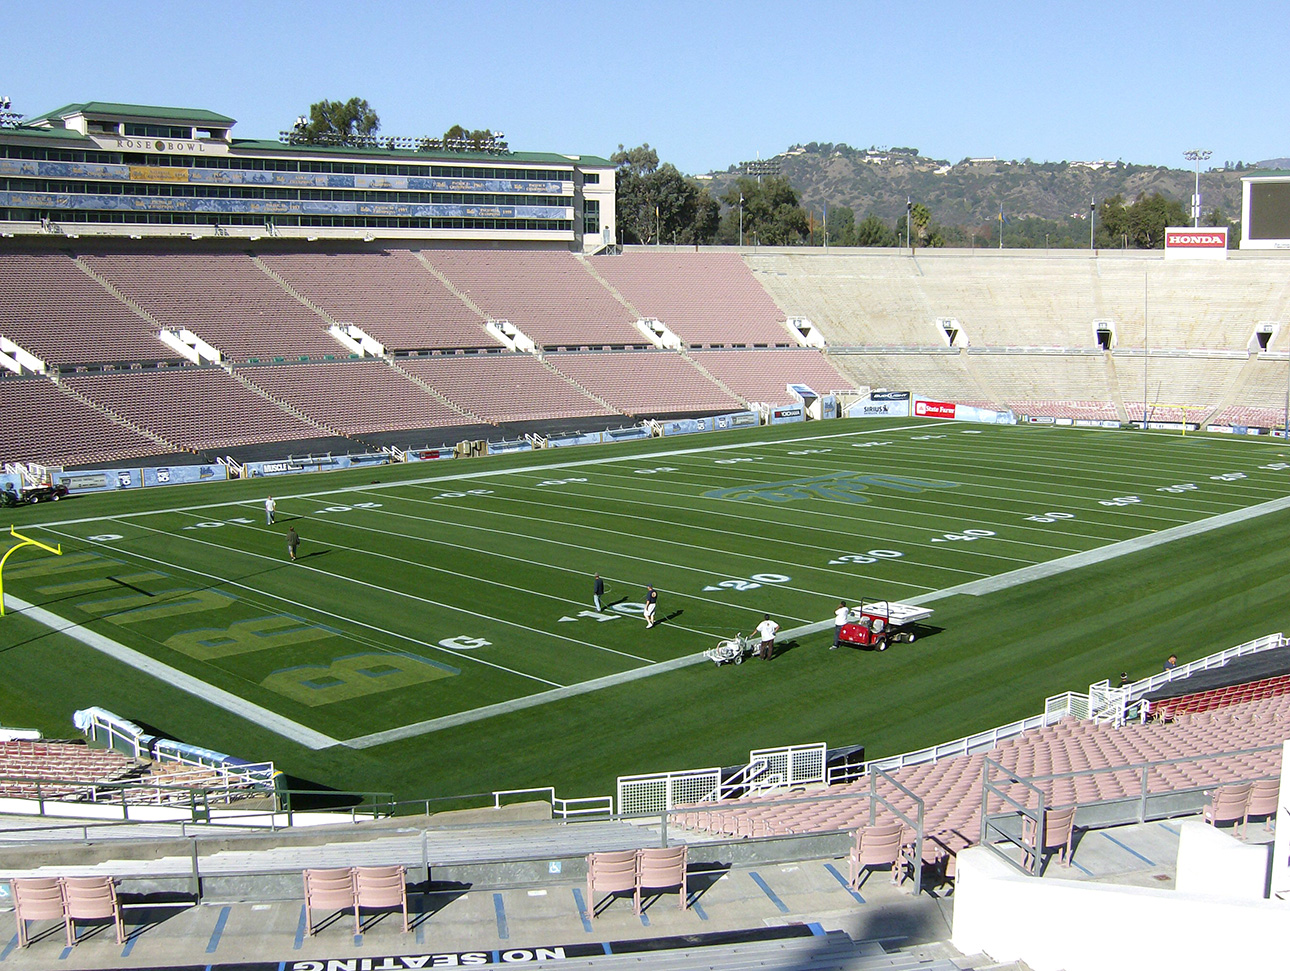 rose-bowl-renovation-improvement-01